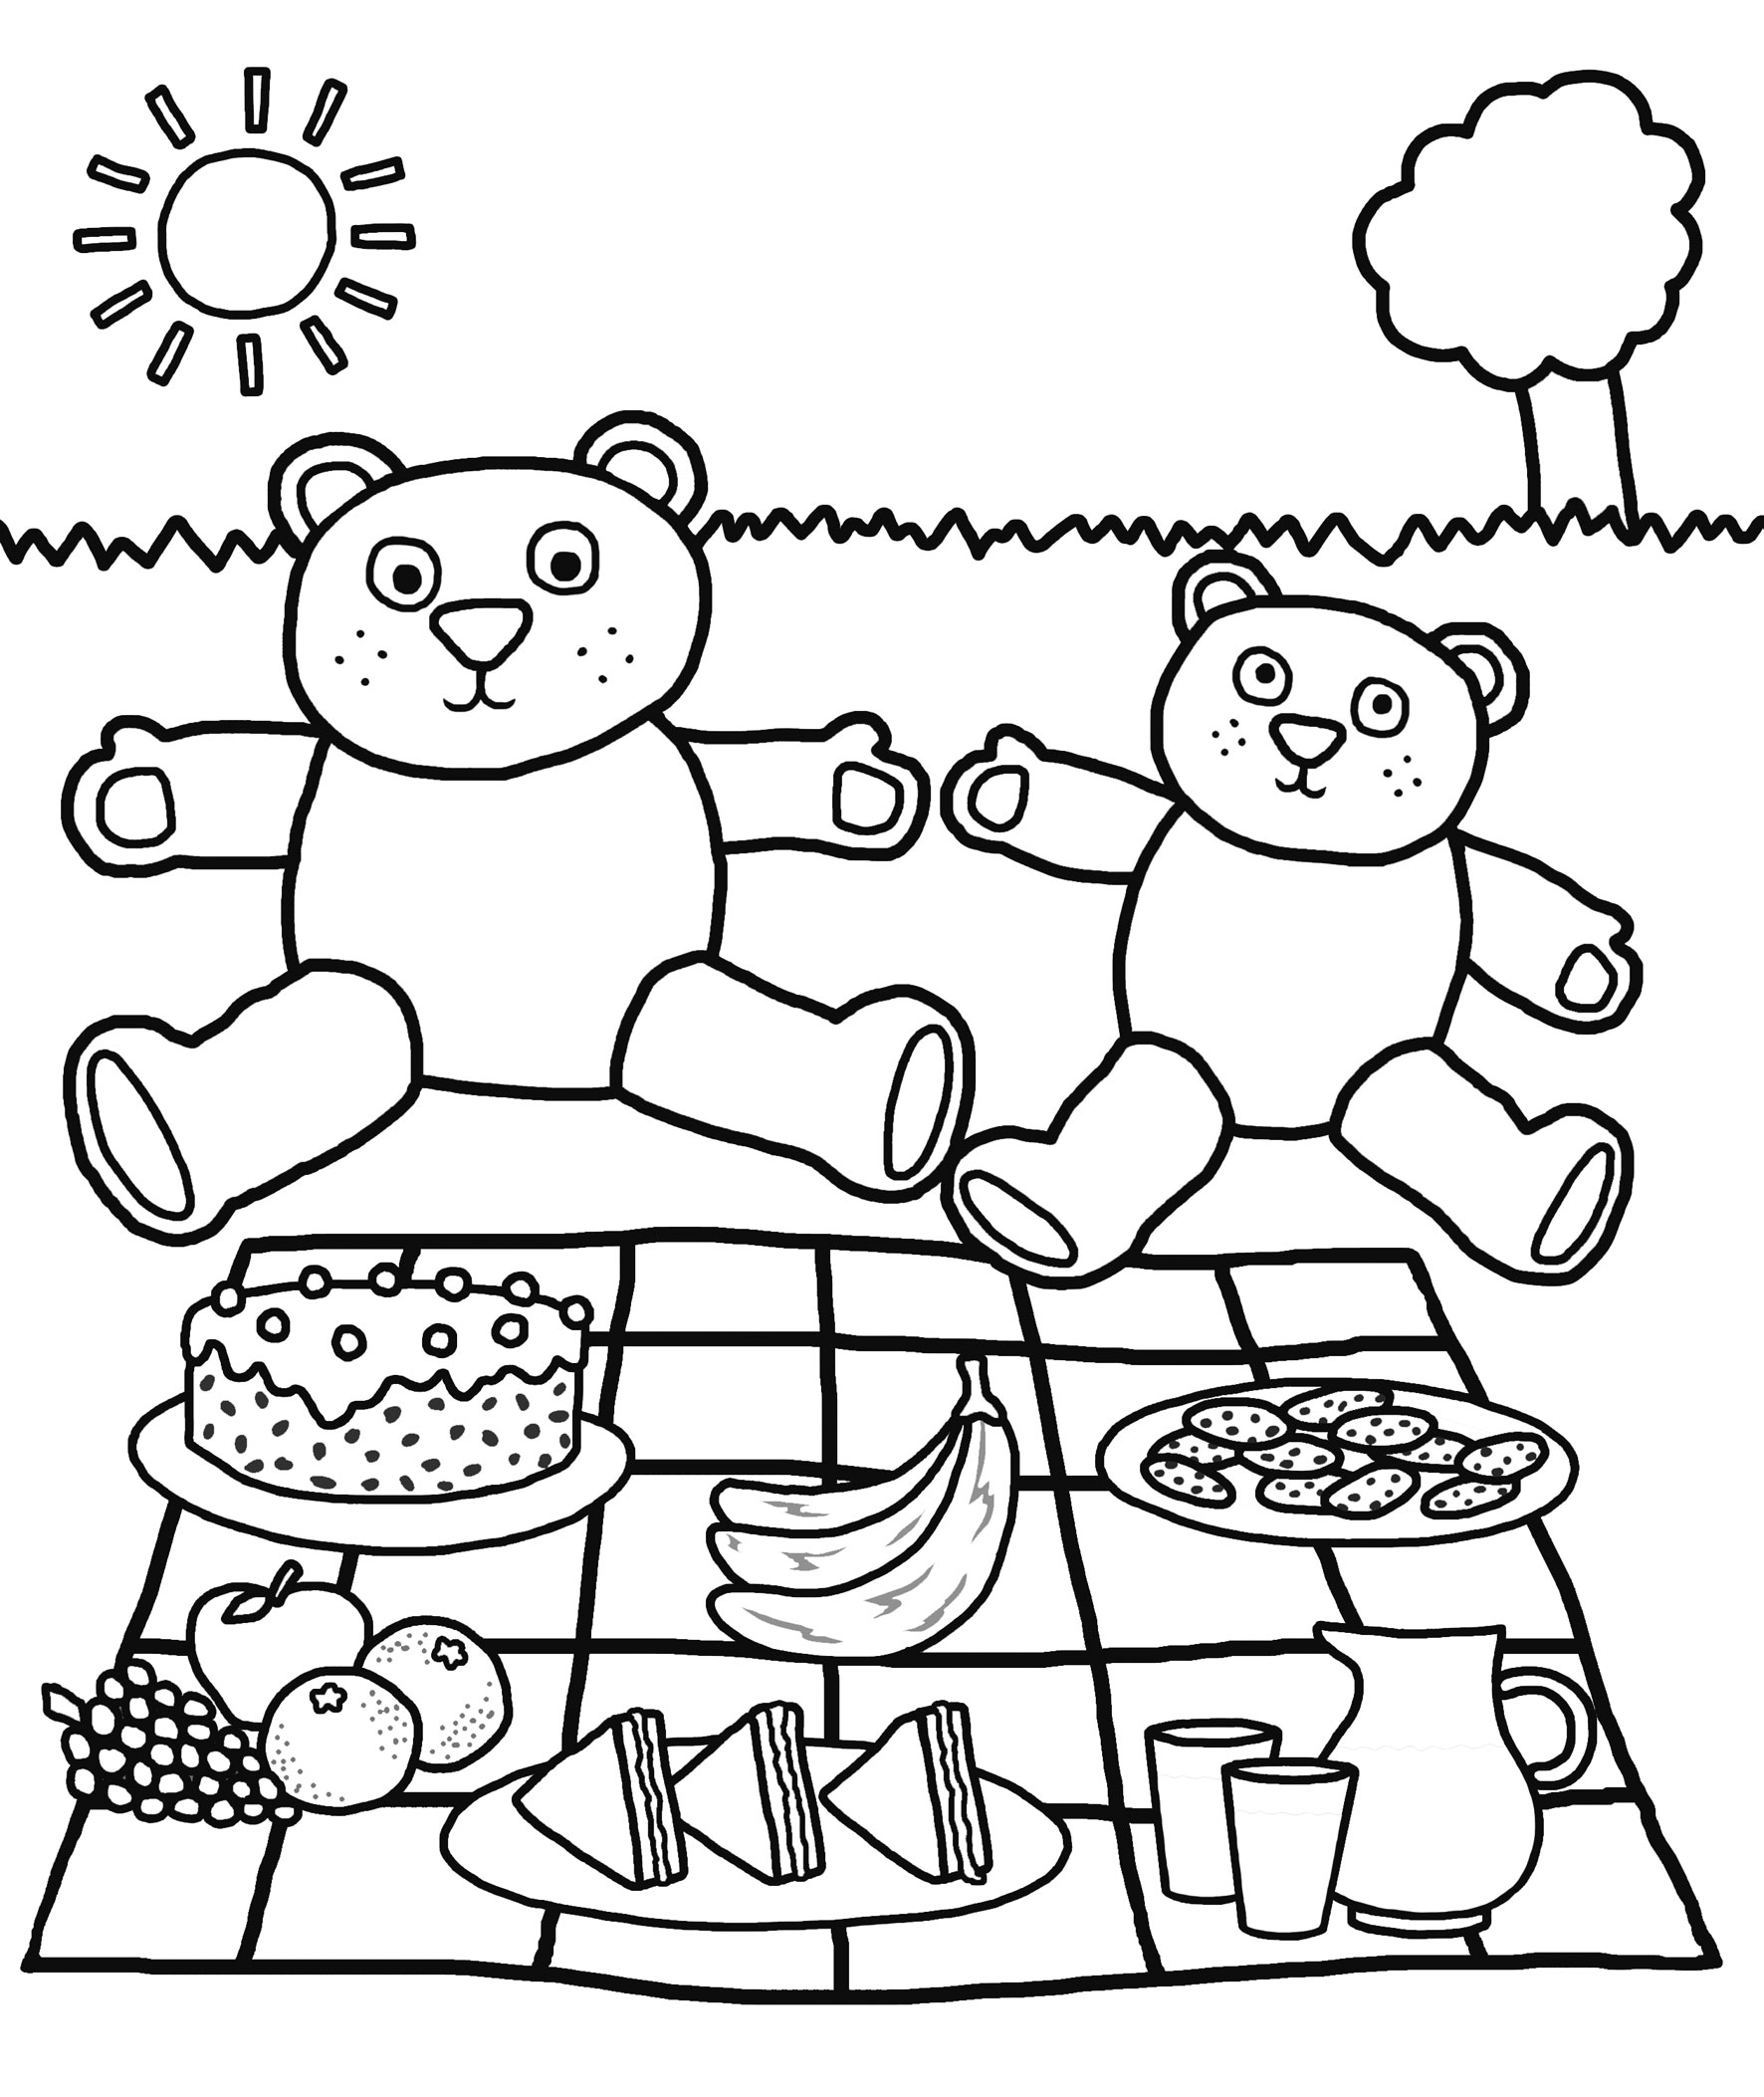 Free printable kindergarten coloring pages for kids for Coloring pages for kids download